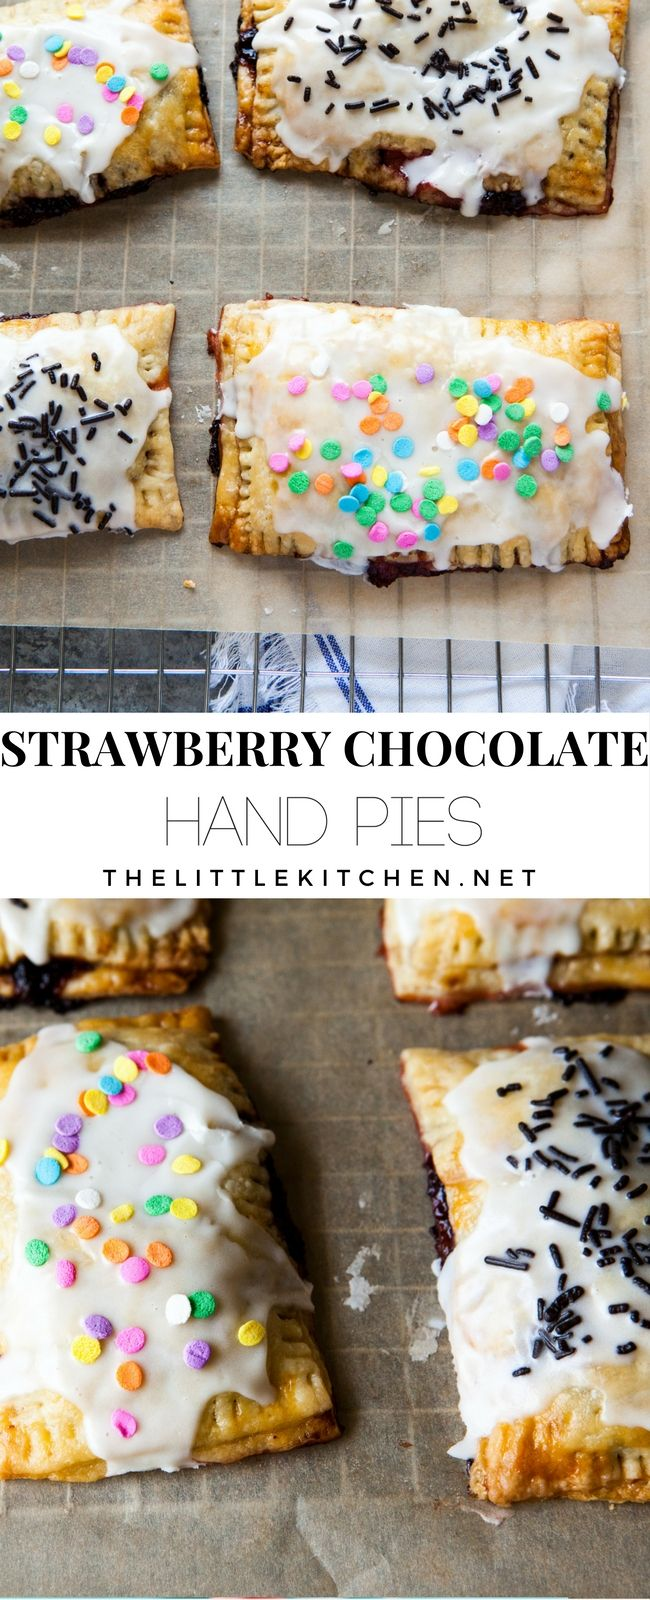 ... Desserts on Pinterest | Chocolate, Low Fat Cake and Chocolate Glaze